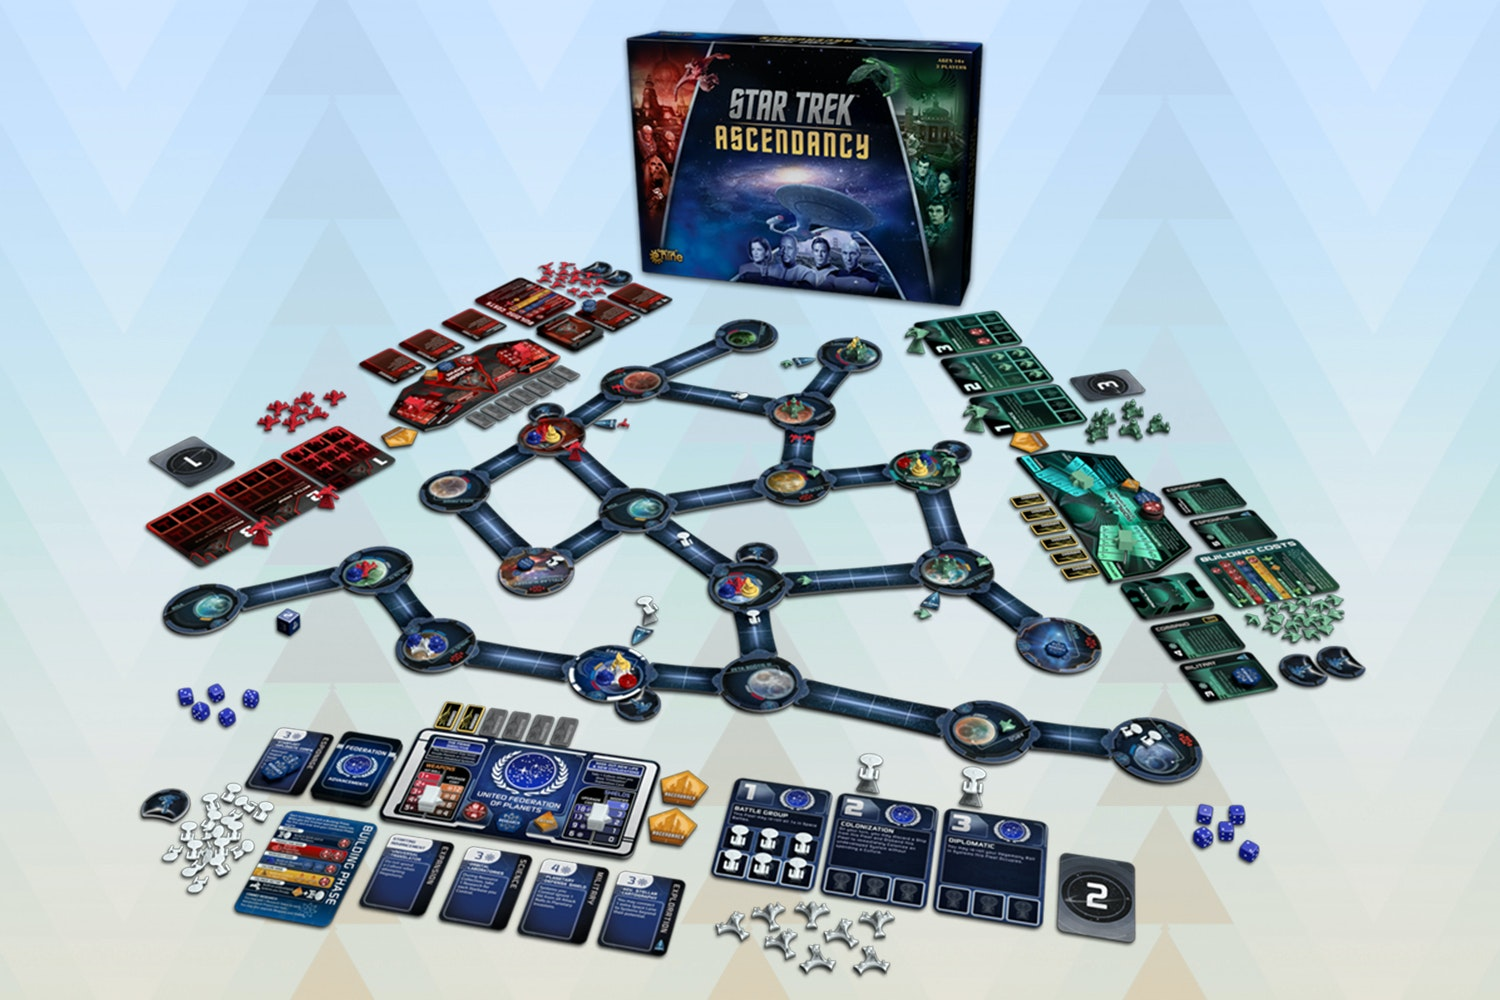 Star Trek: Ascendancy Board Game